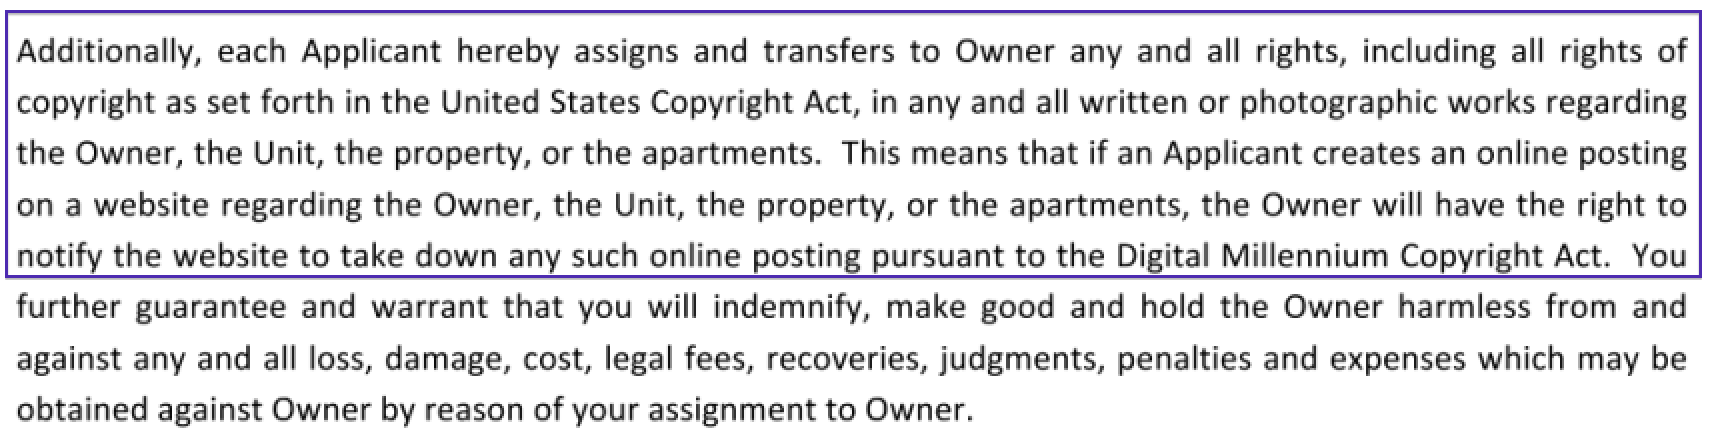 "The ""Social Media Addendum"" for this Orlando-area apartment complex not only fines tenants $10,000 for negative online reviews, but transfers the copyright of anything you write or any images you publish about the property or its management."